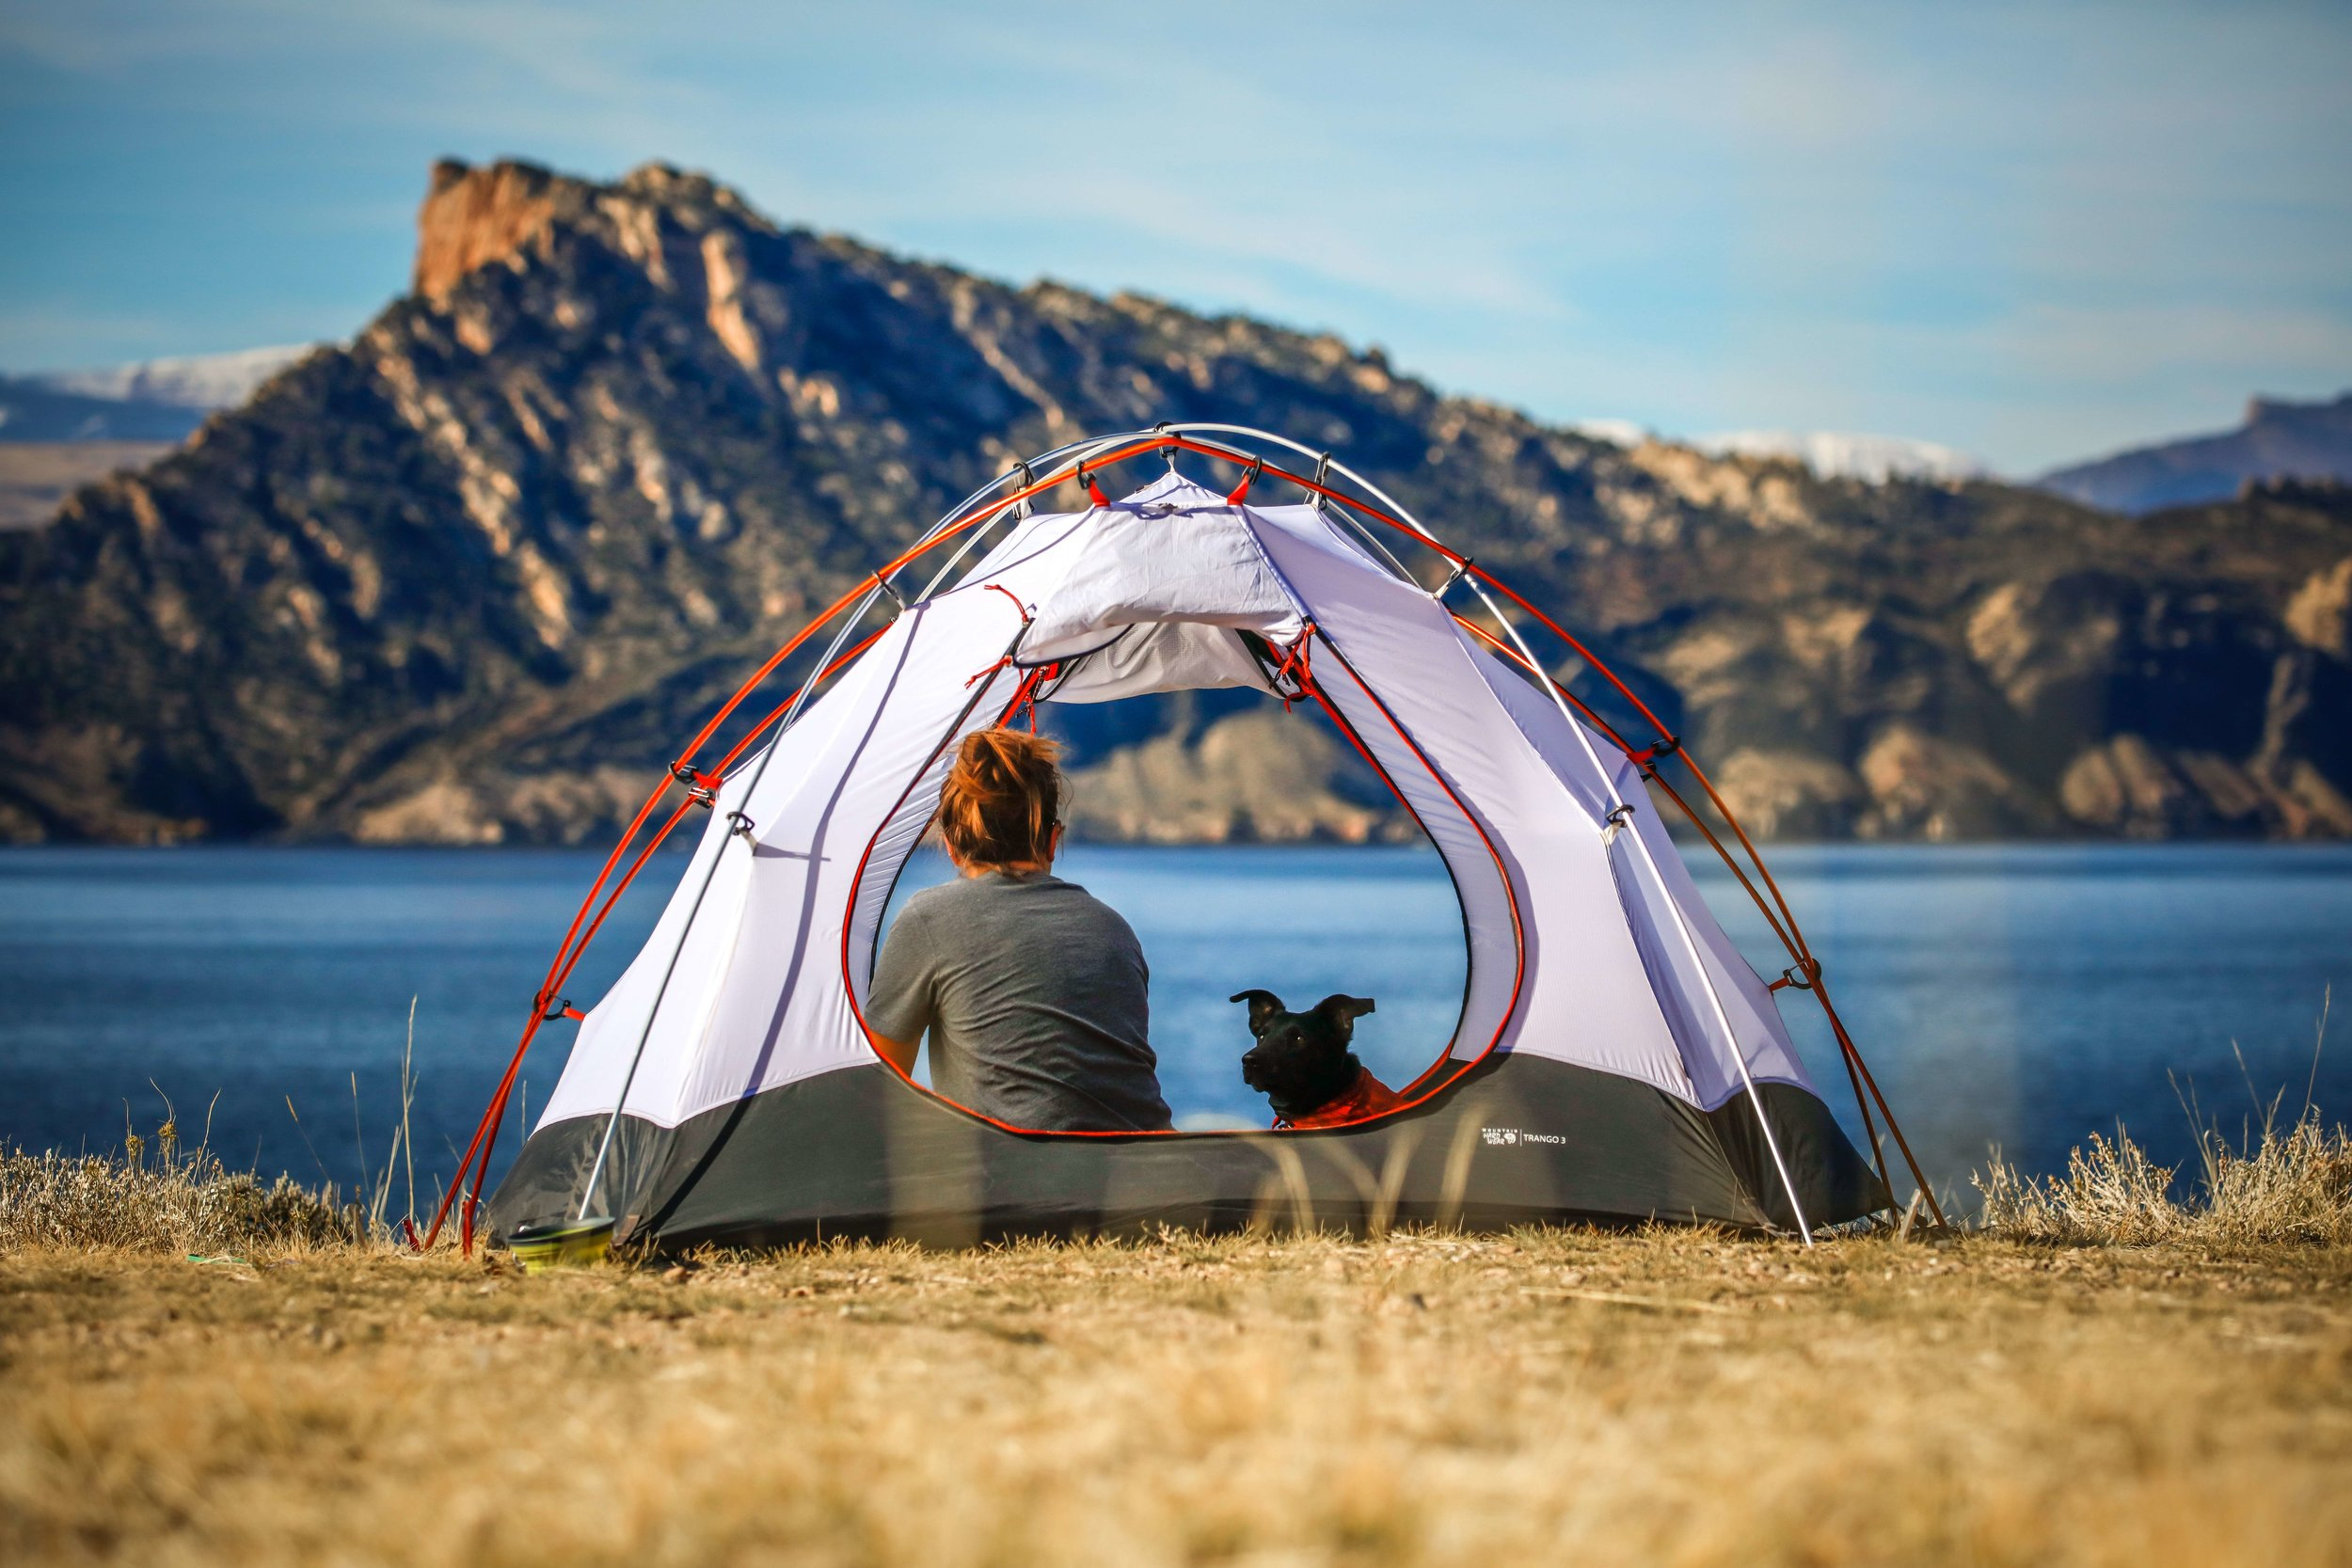 Make sure that your tent is big enough for you and your family (and pets!). This photo shows a backpacking tent, which doesn't have the height of most camping tents we considered. A good camping tent is tall enough to almost stand up in.   Photo by    Patrick Hendry    on    Unsplash